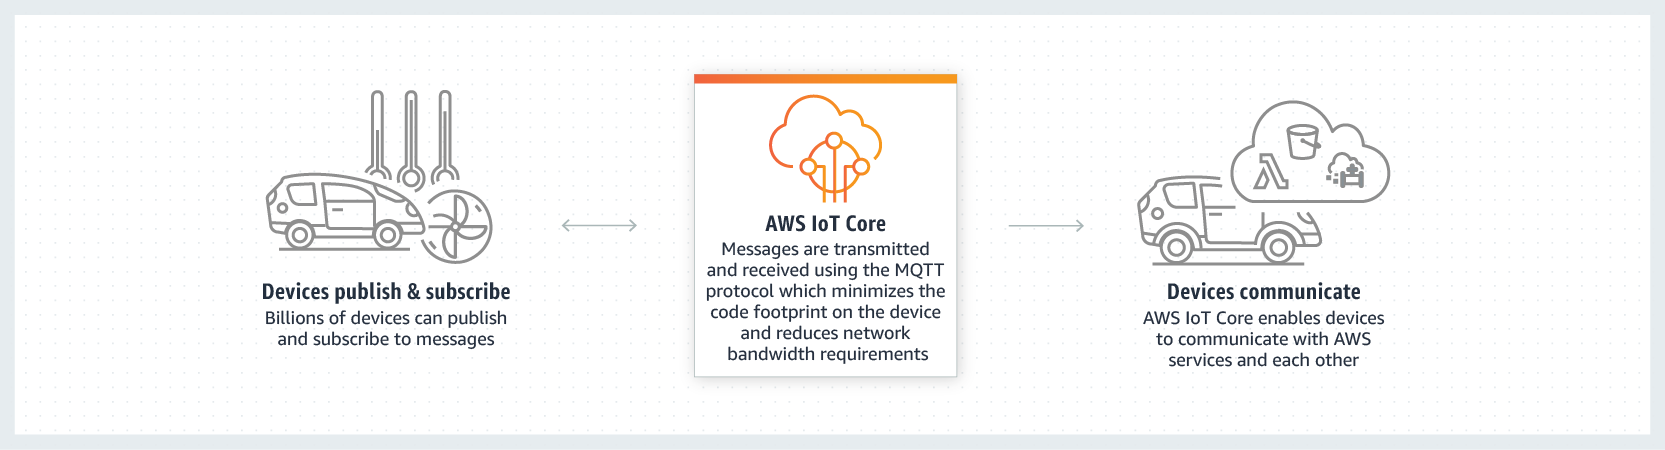 AWS%20IoT%20Core%20-%20Connect%20and%20Manage.edb43e92d542f4053727eaeda267e3776382fd06